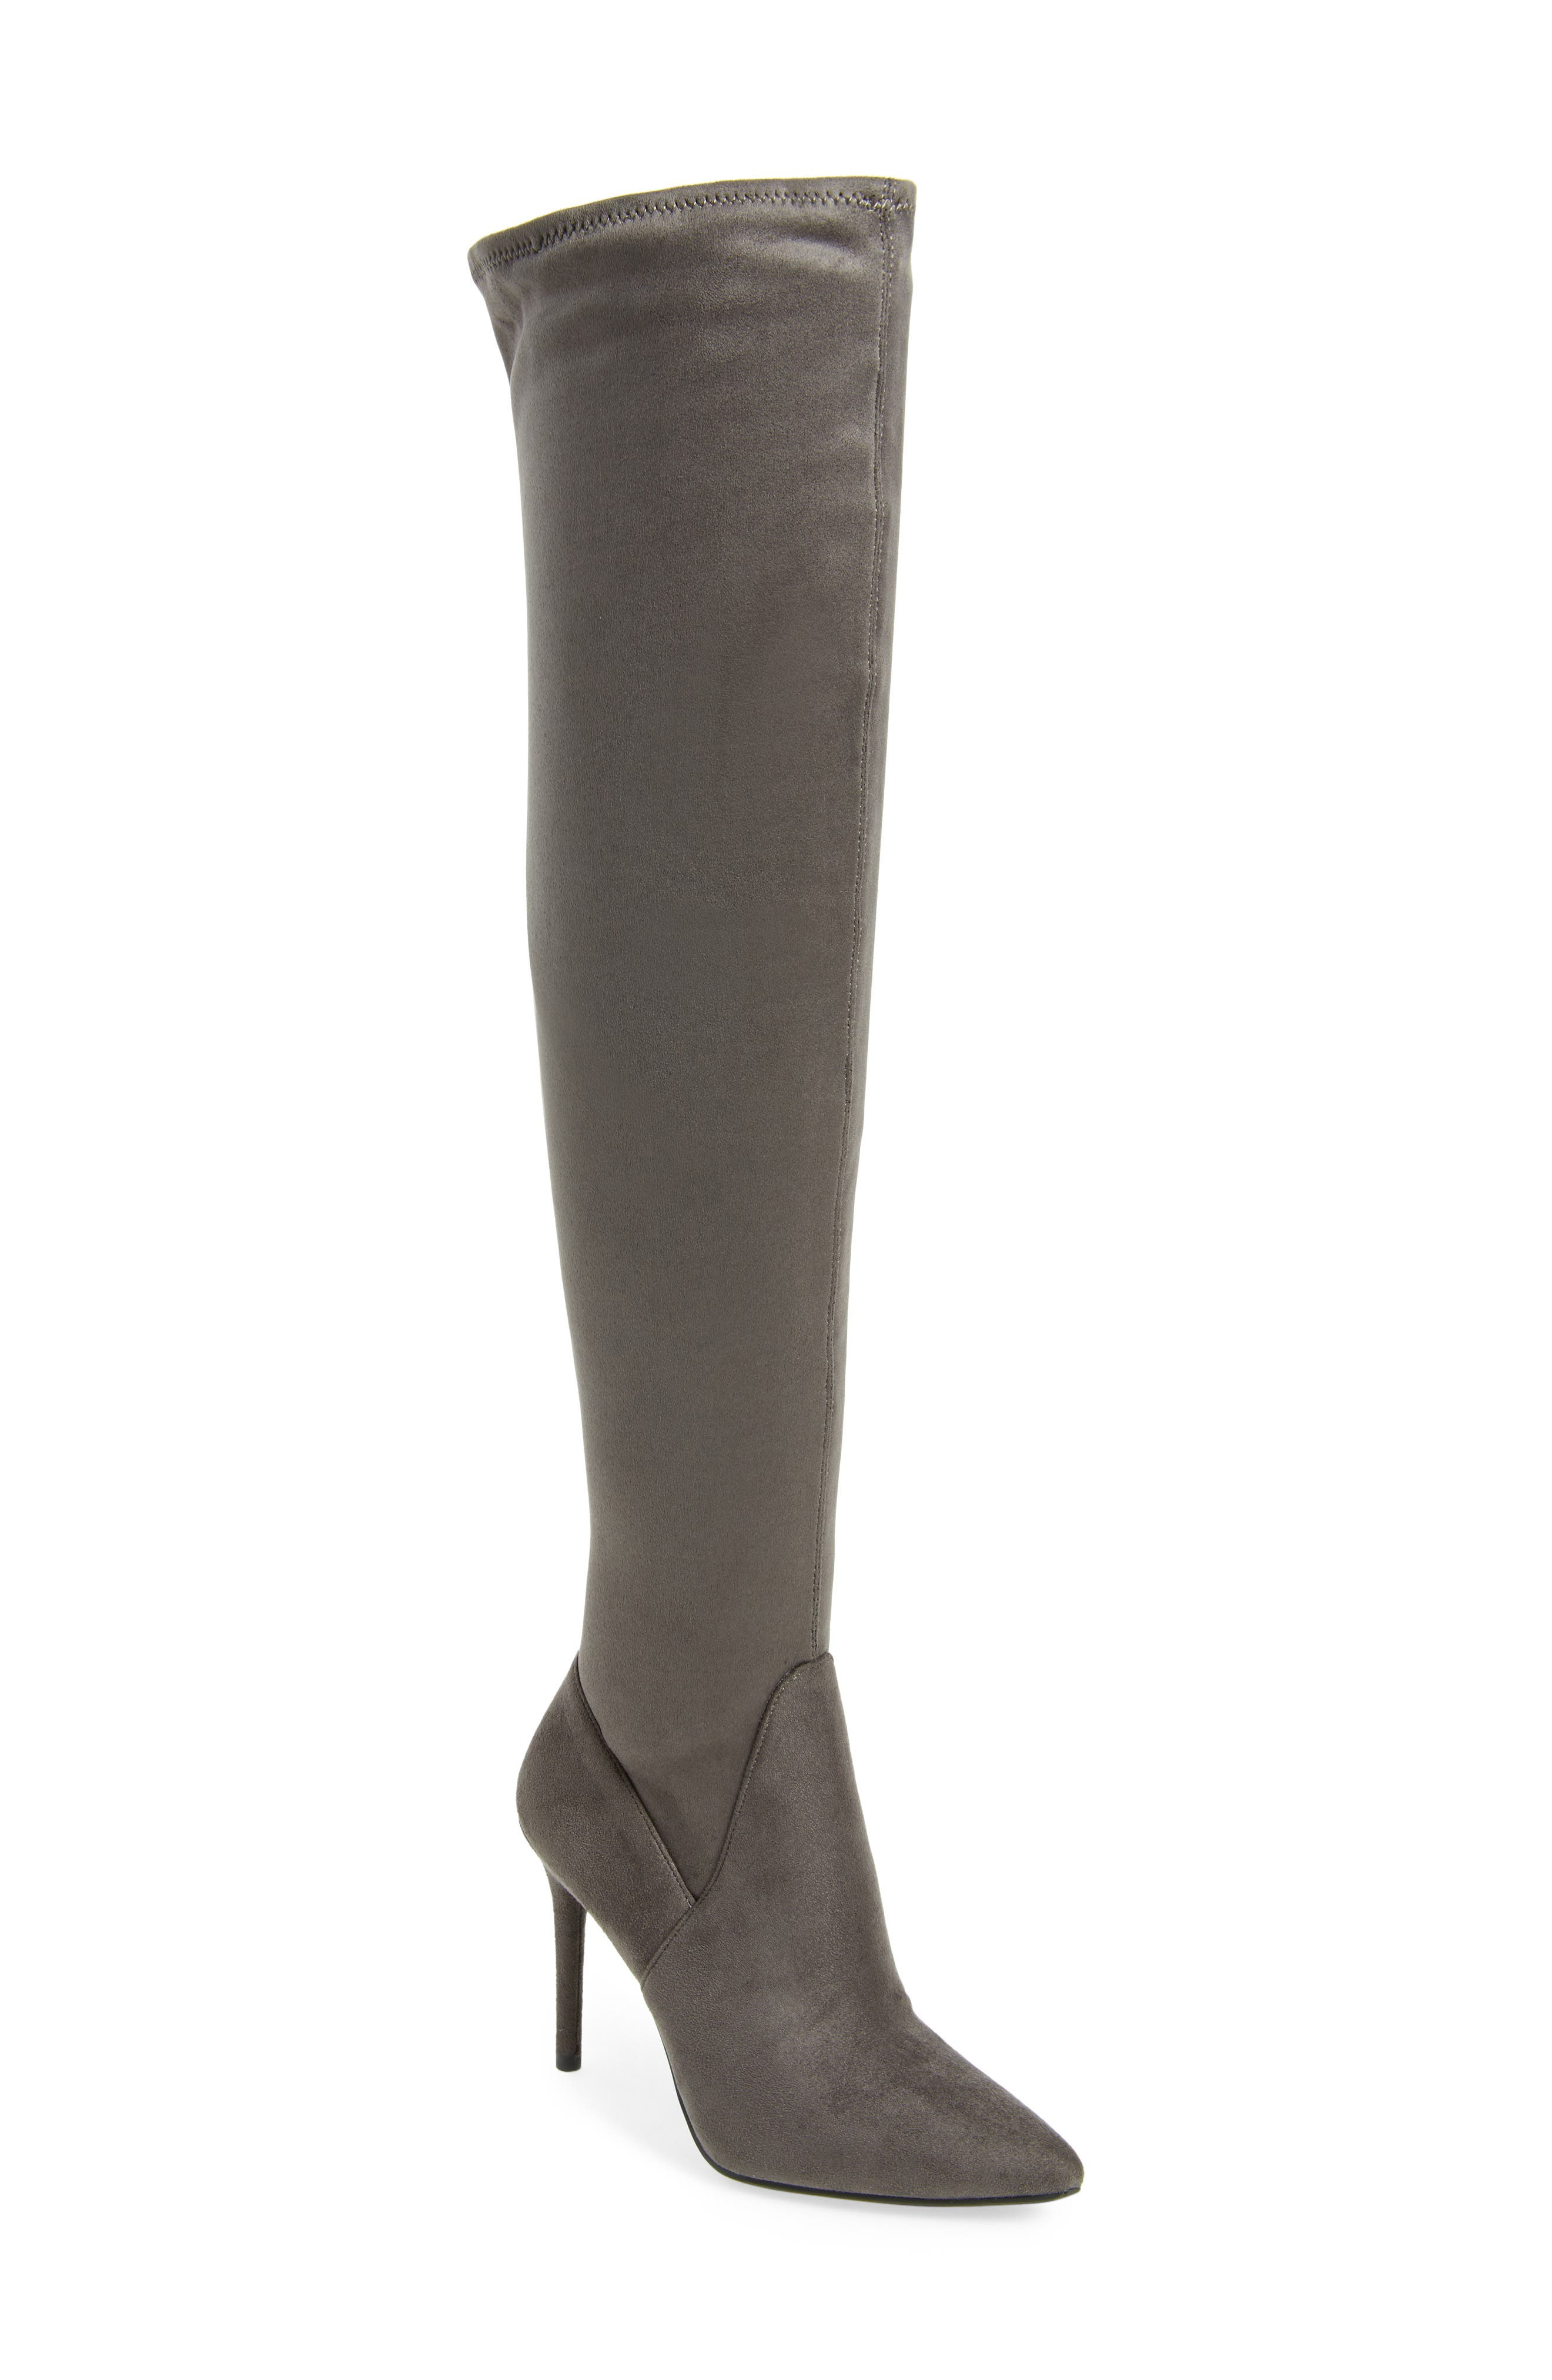 Alternate Image 1 Selected - Jessica Simpson Loring Stretch Over the Knee Boot